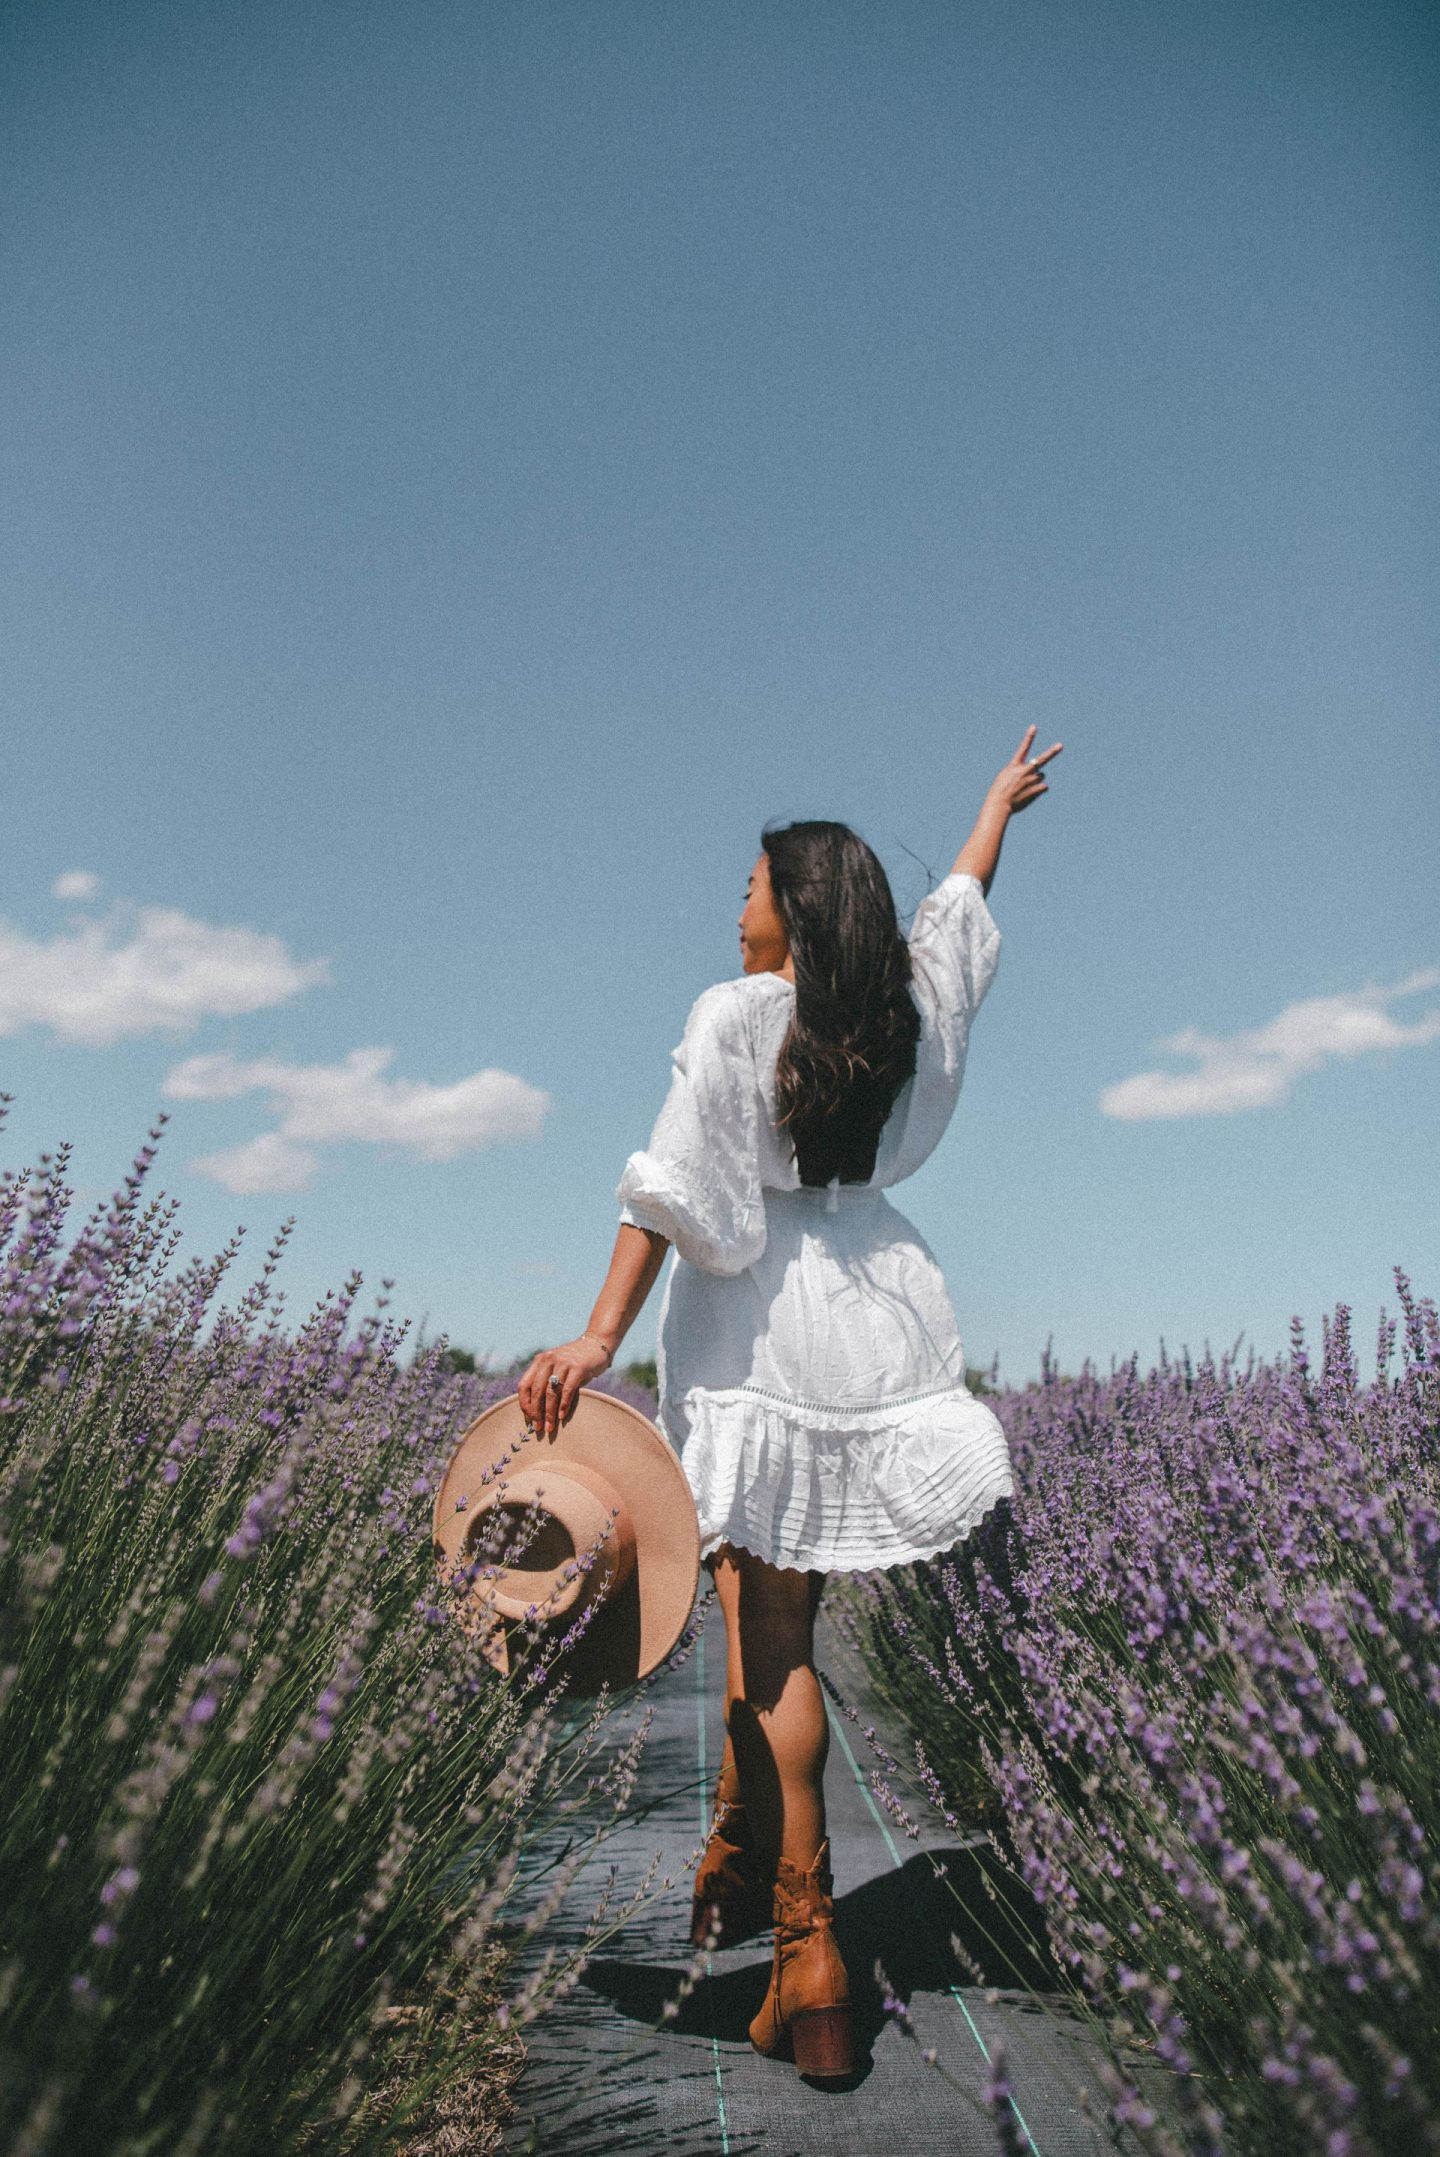 Lavender field aesthetic – lavender field photo shoot outfit – lavender field – lavender field dress – Emma's Edition – things to do in Eastern Washington – Explore Washington State - Seattle blogger – Eastern Washington – Quincy Washington - Seychelles Shoes